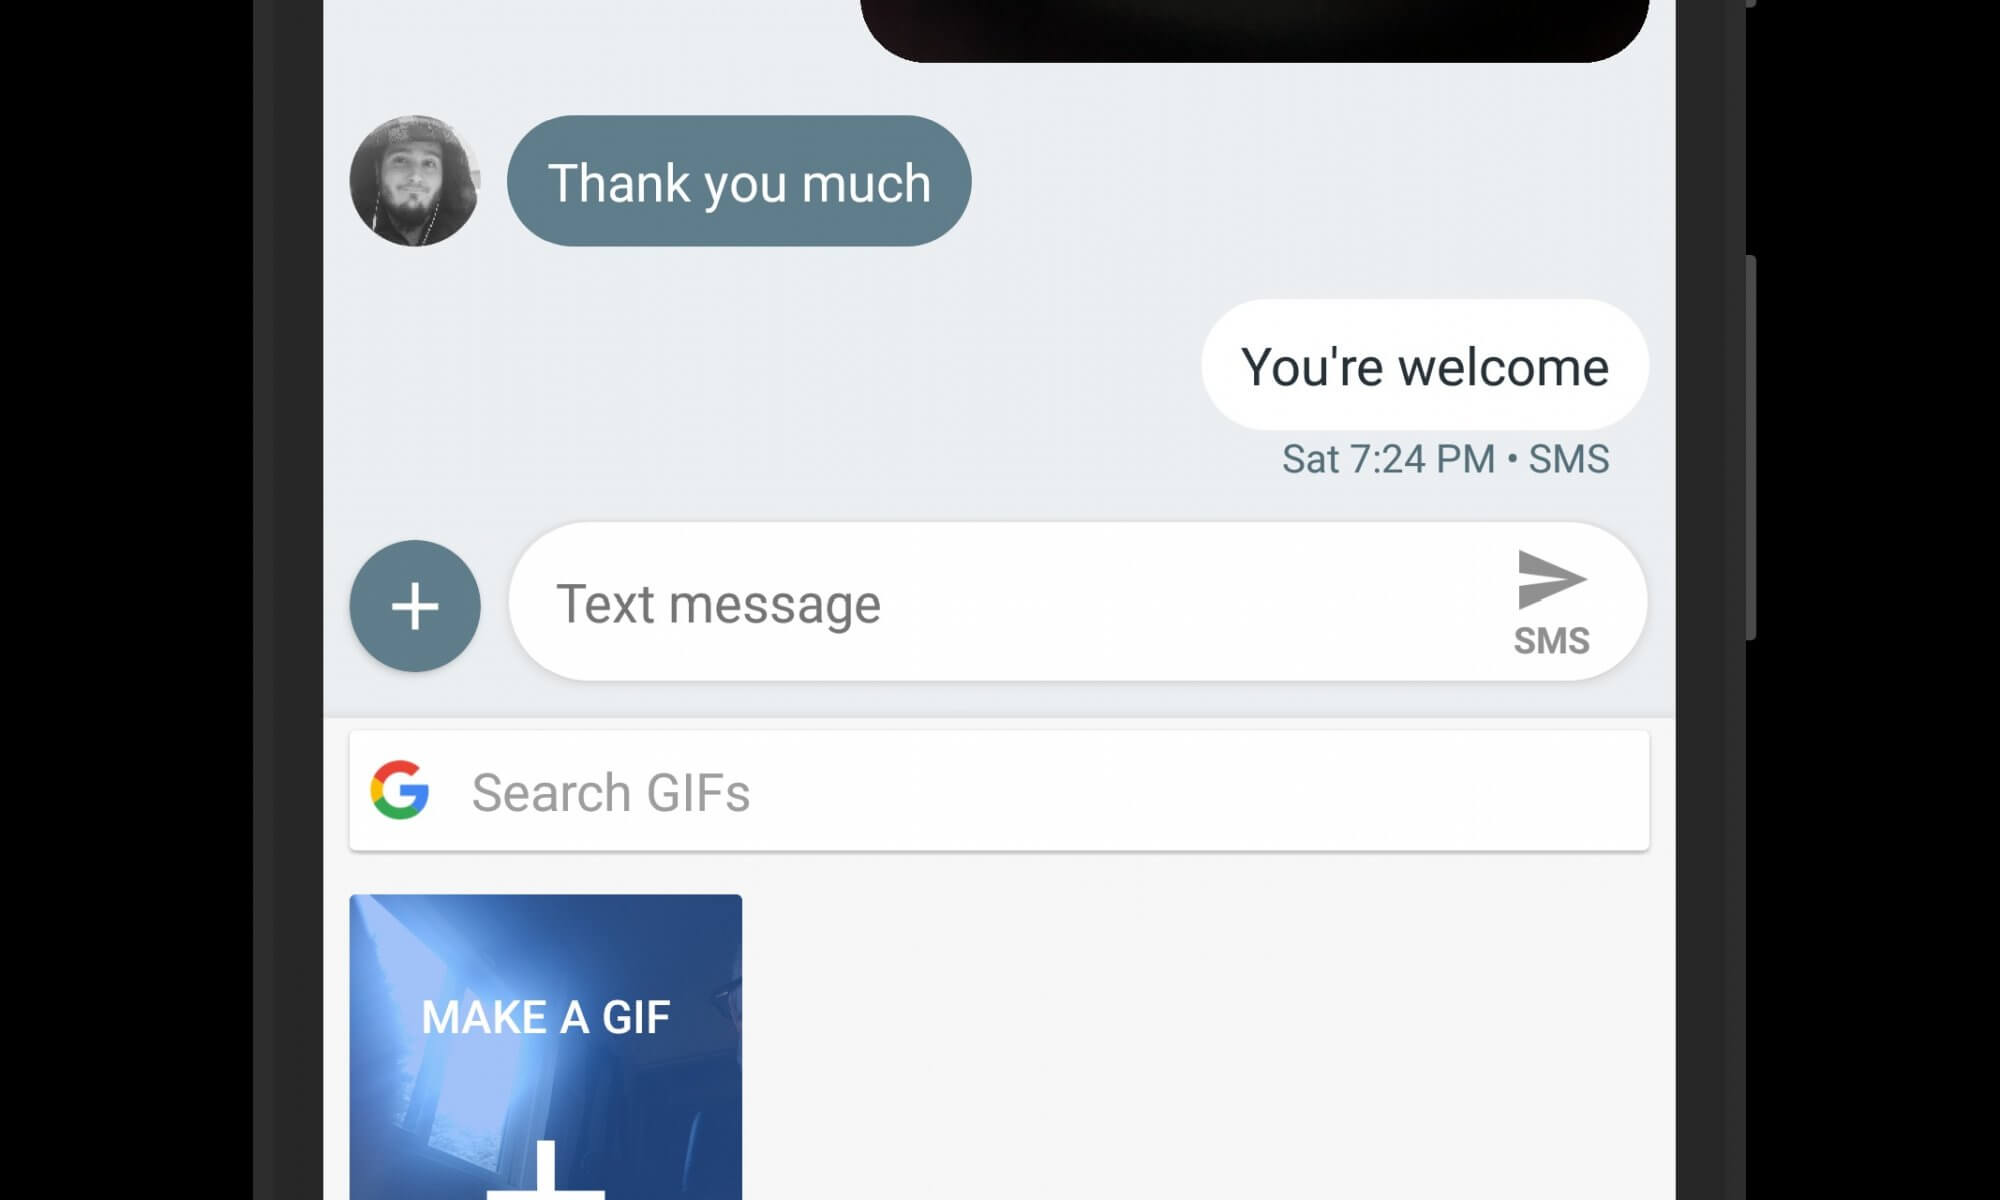 Make Your Own GIF in Gboard